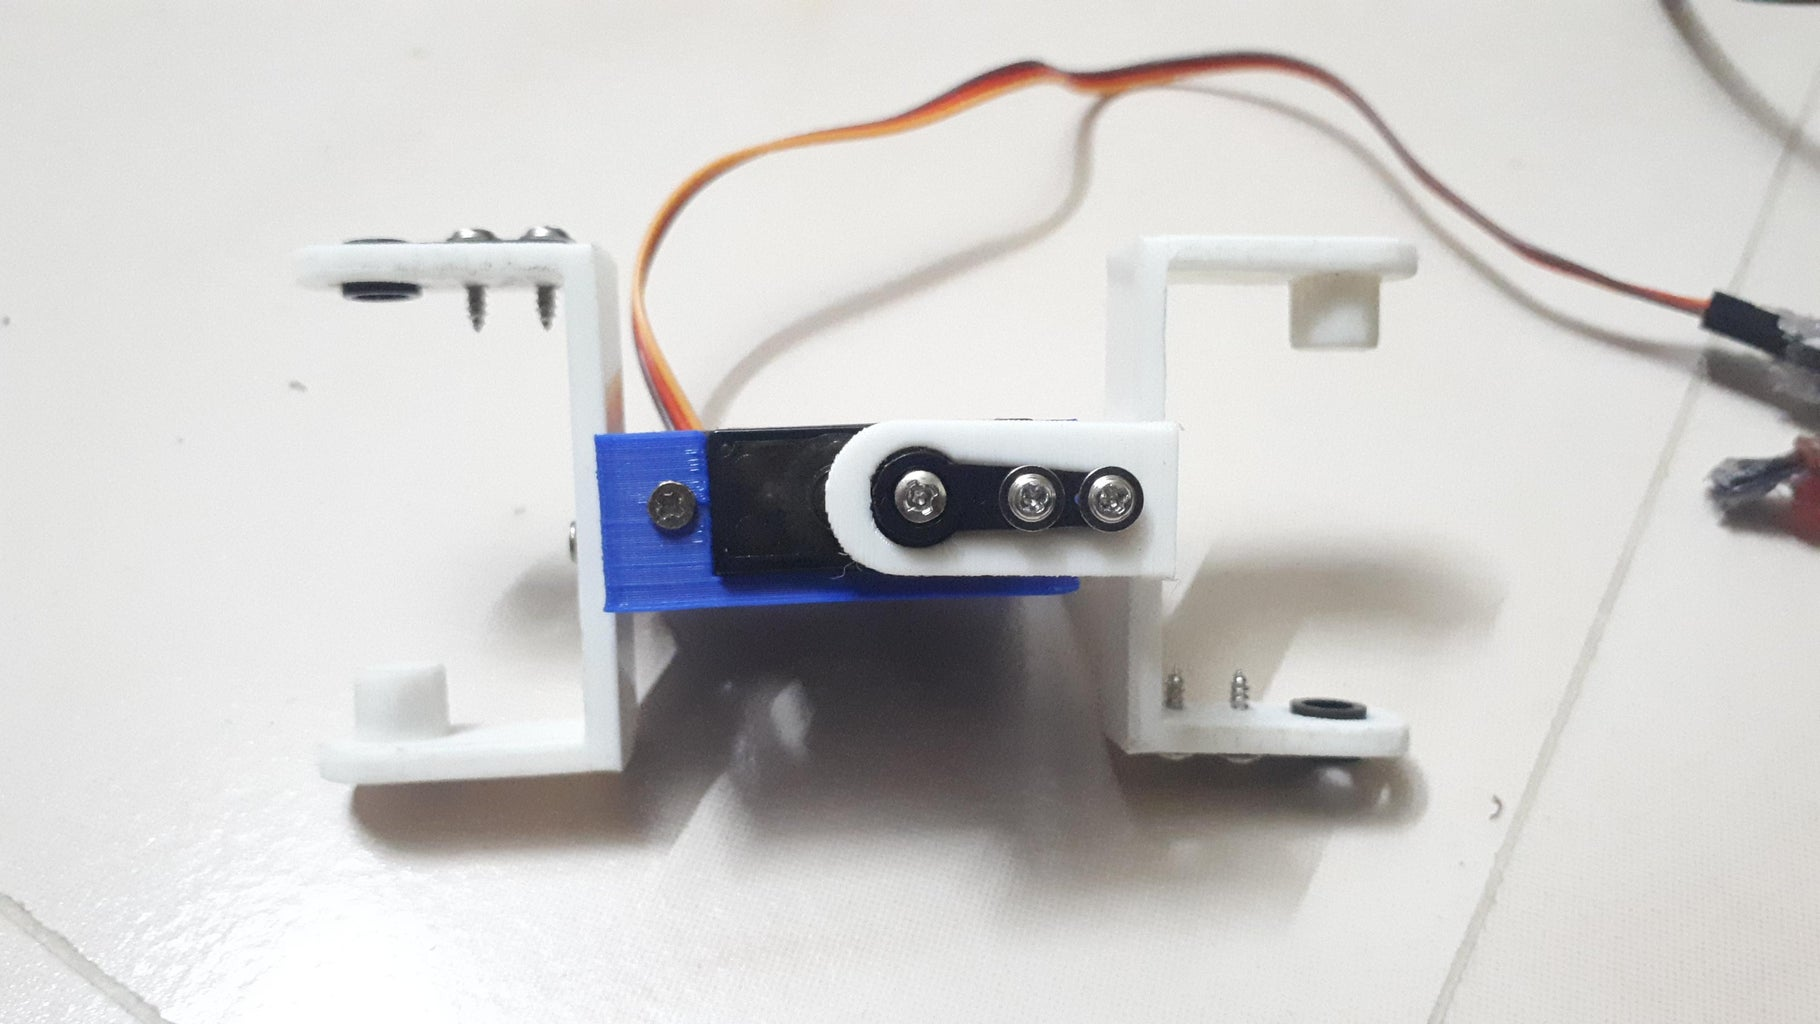 Connect Servo With Home Degree